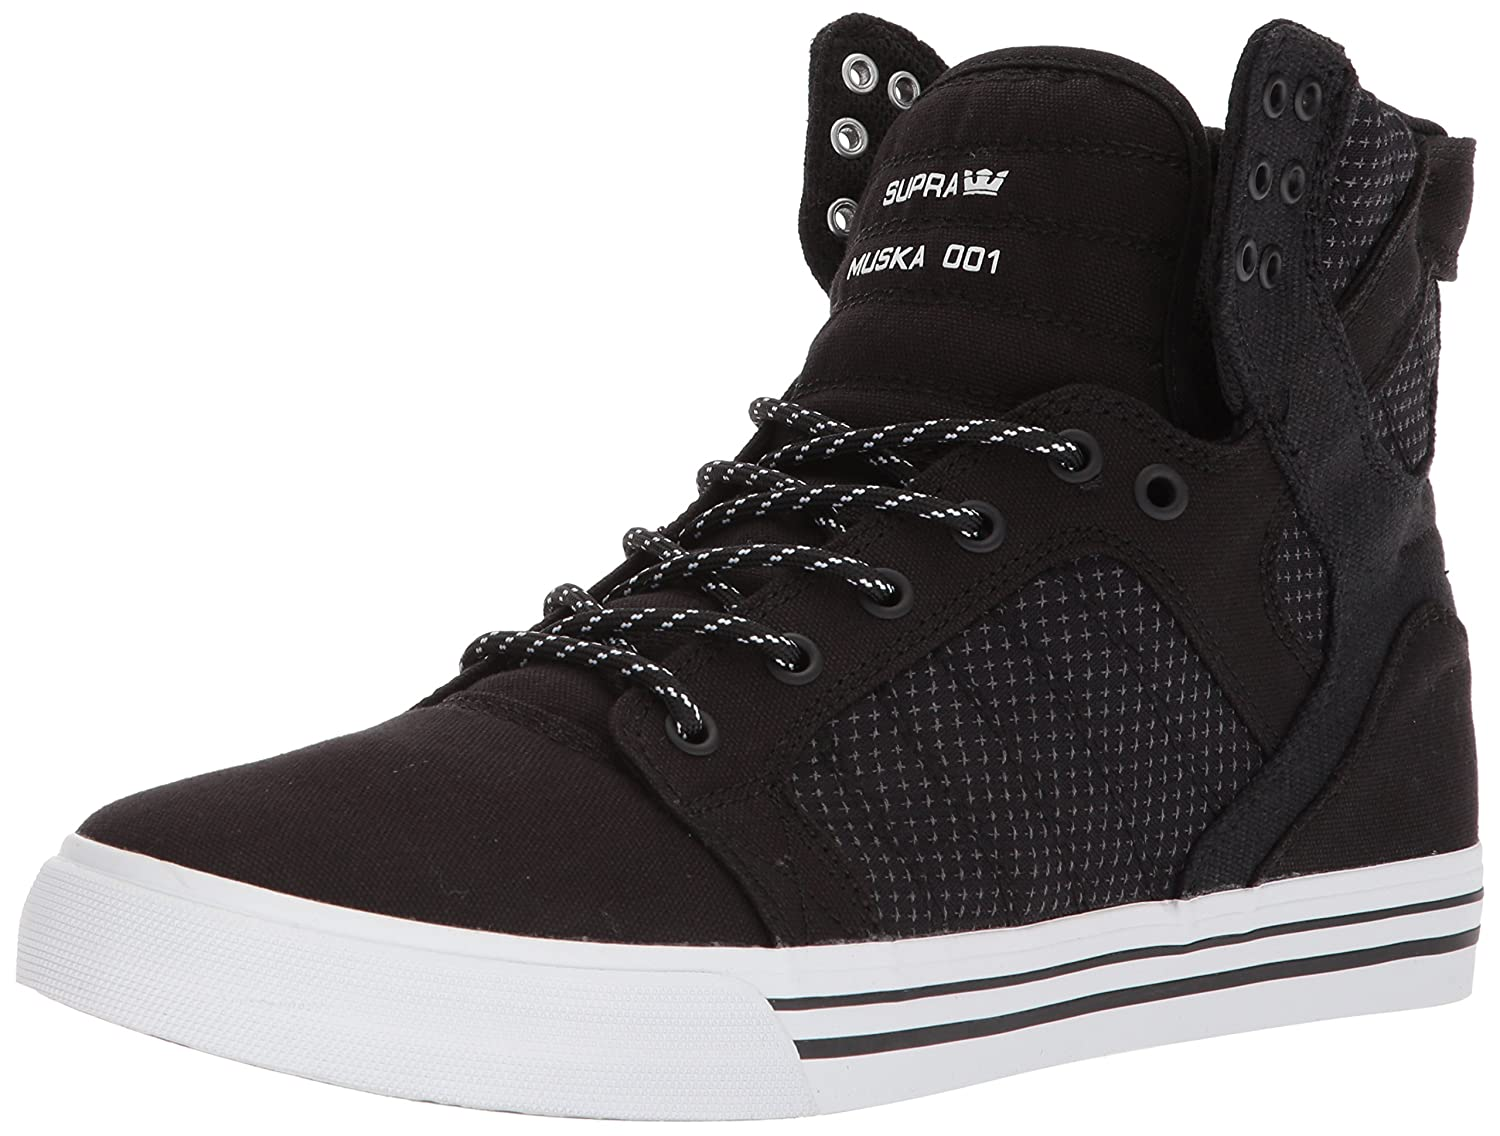 Supra Skytop Skate Shoe B074KJ3ZKT 8.5 M US|Black/Dark Grey/White